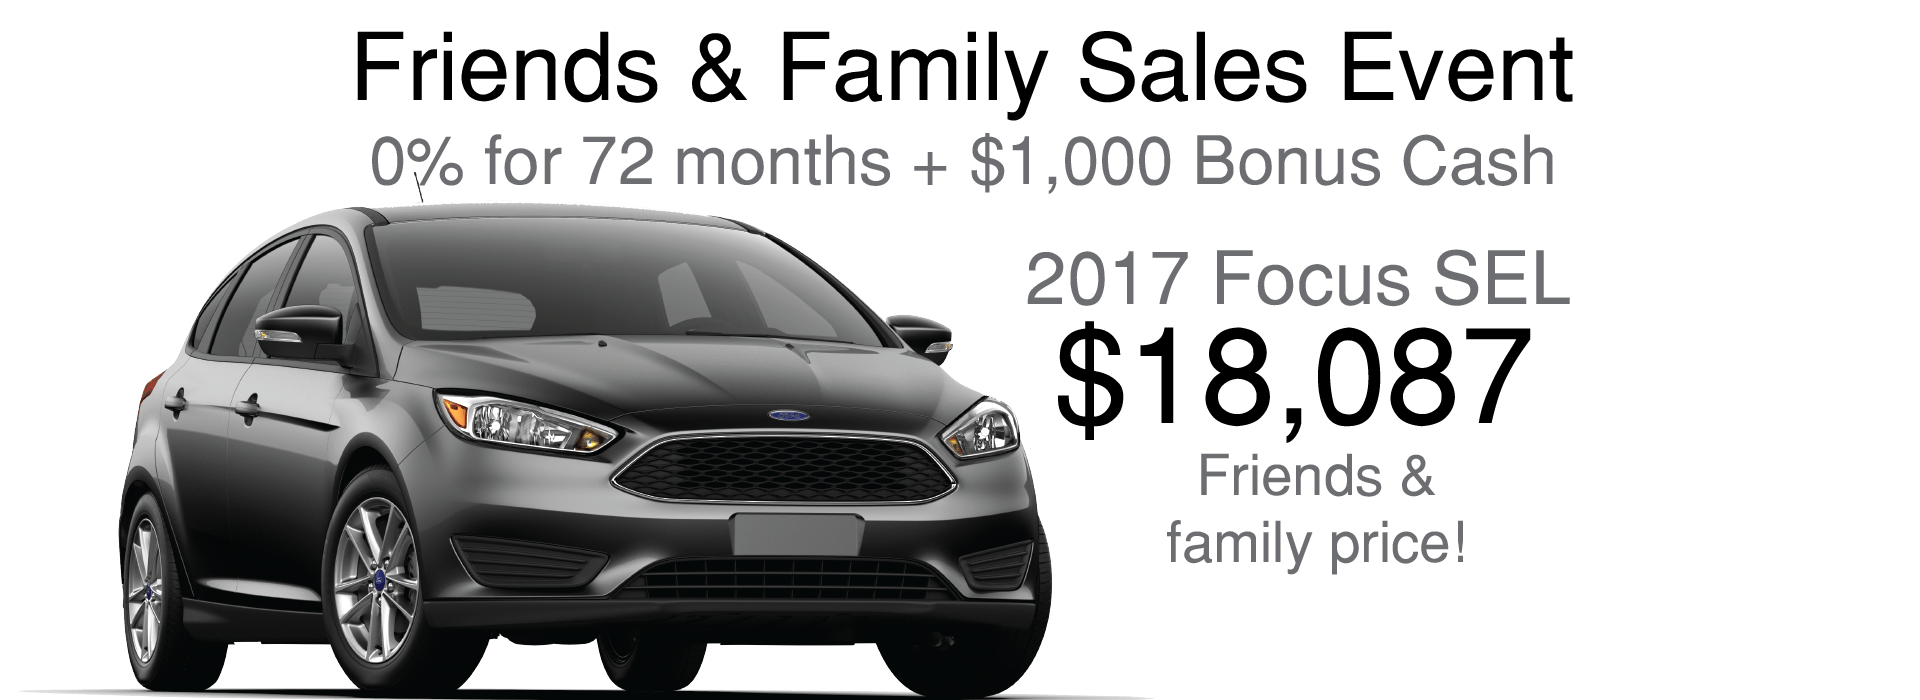 2017 Ford Focus SEL Friends and Family Price: $18,087